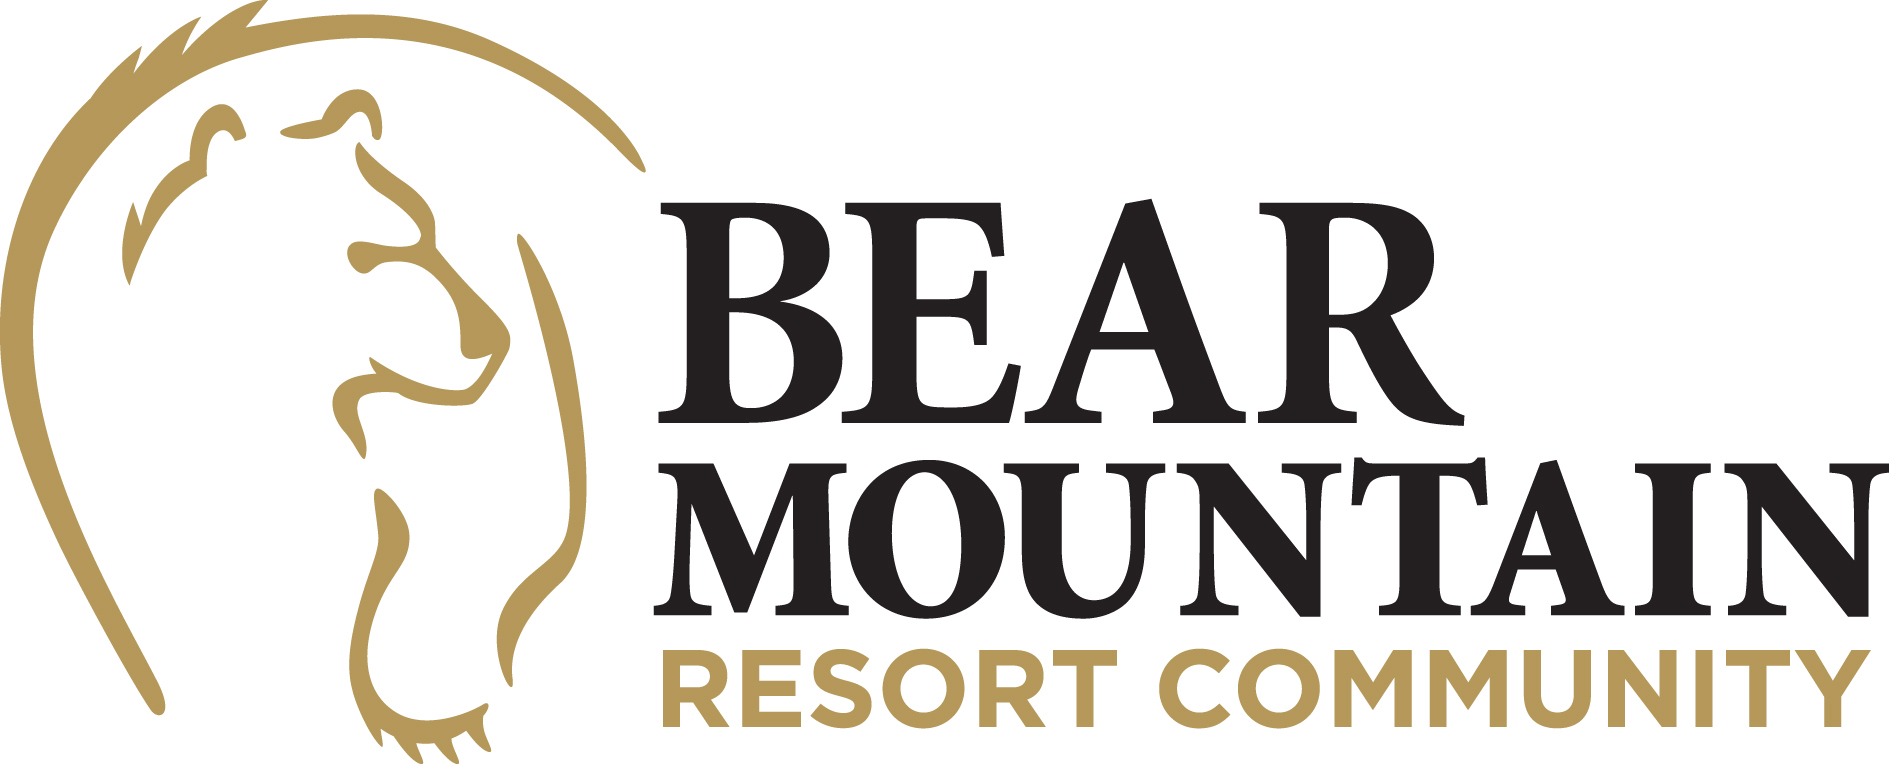 bearcreek mountain logo[7573].jpg